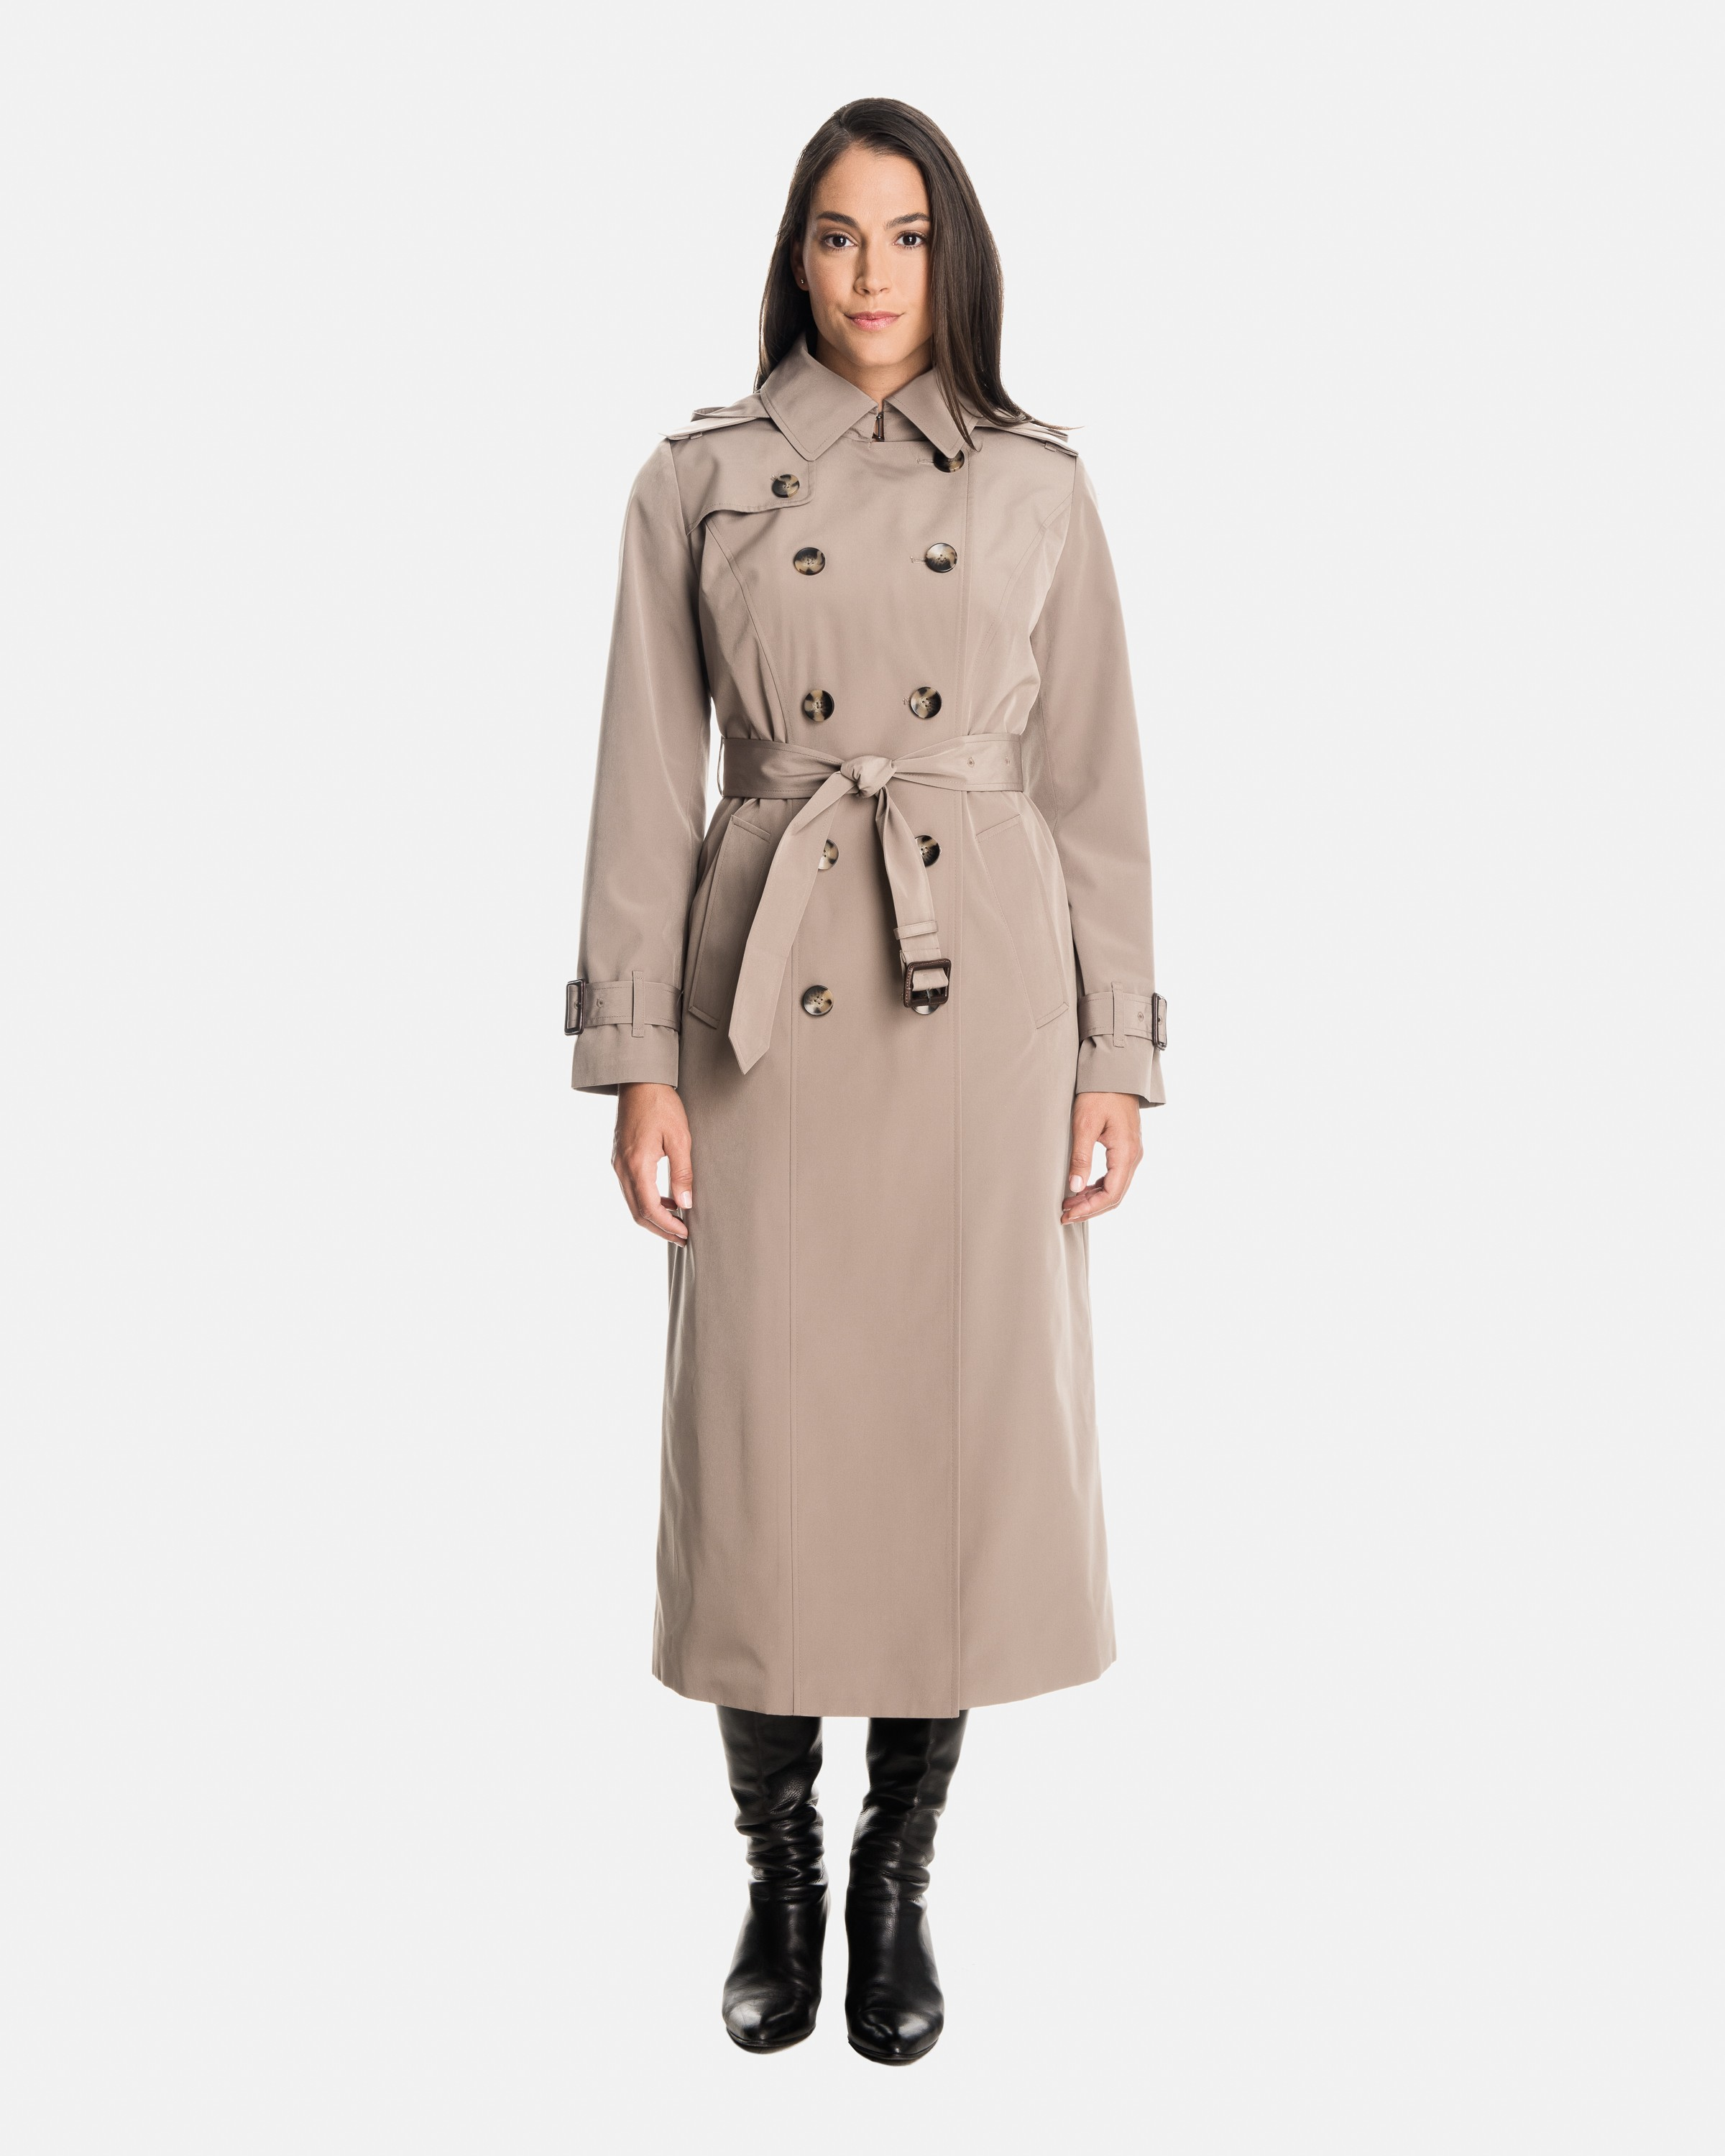 trench coats for women rachel double breasted long trench coat with detachable hood PXLXPFM